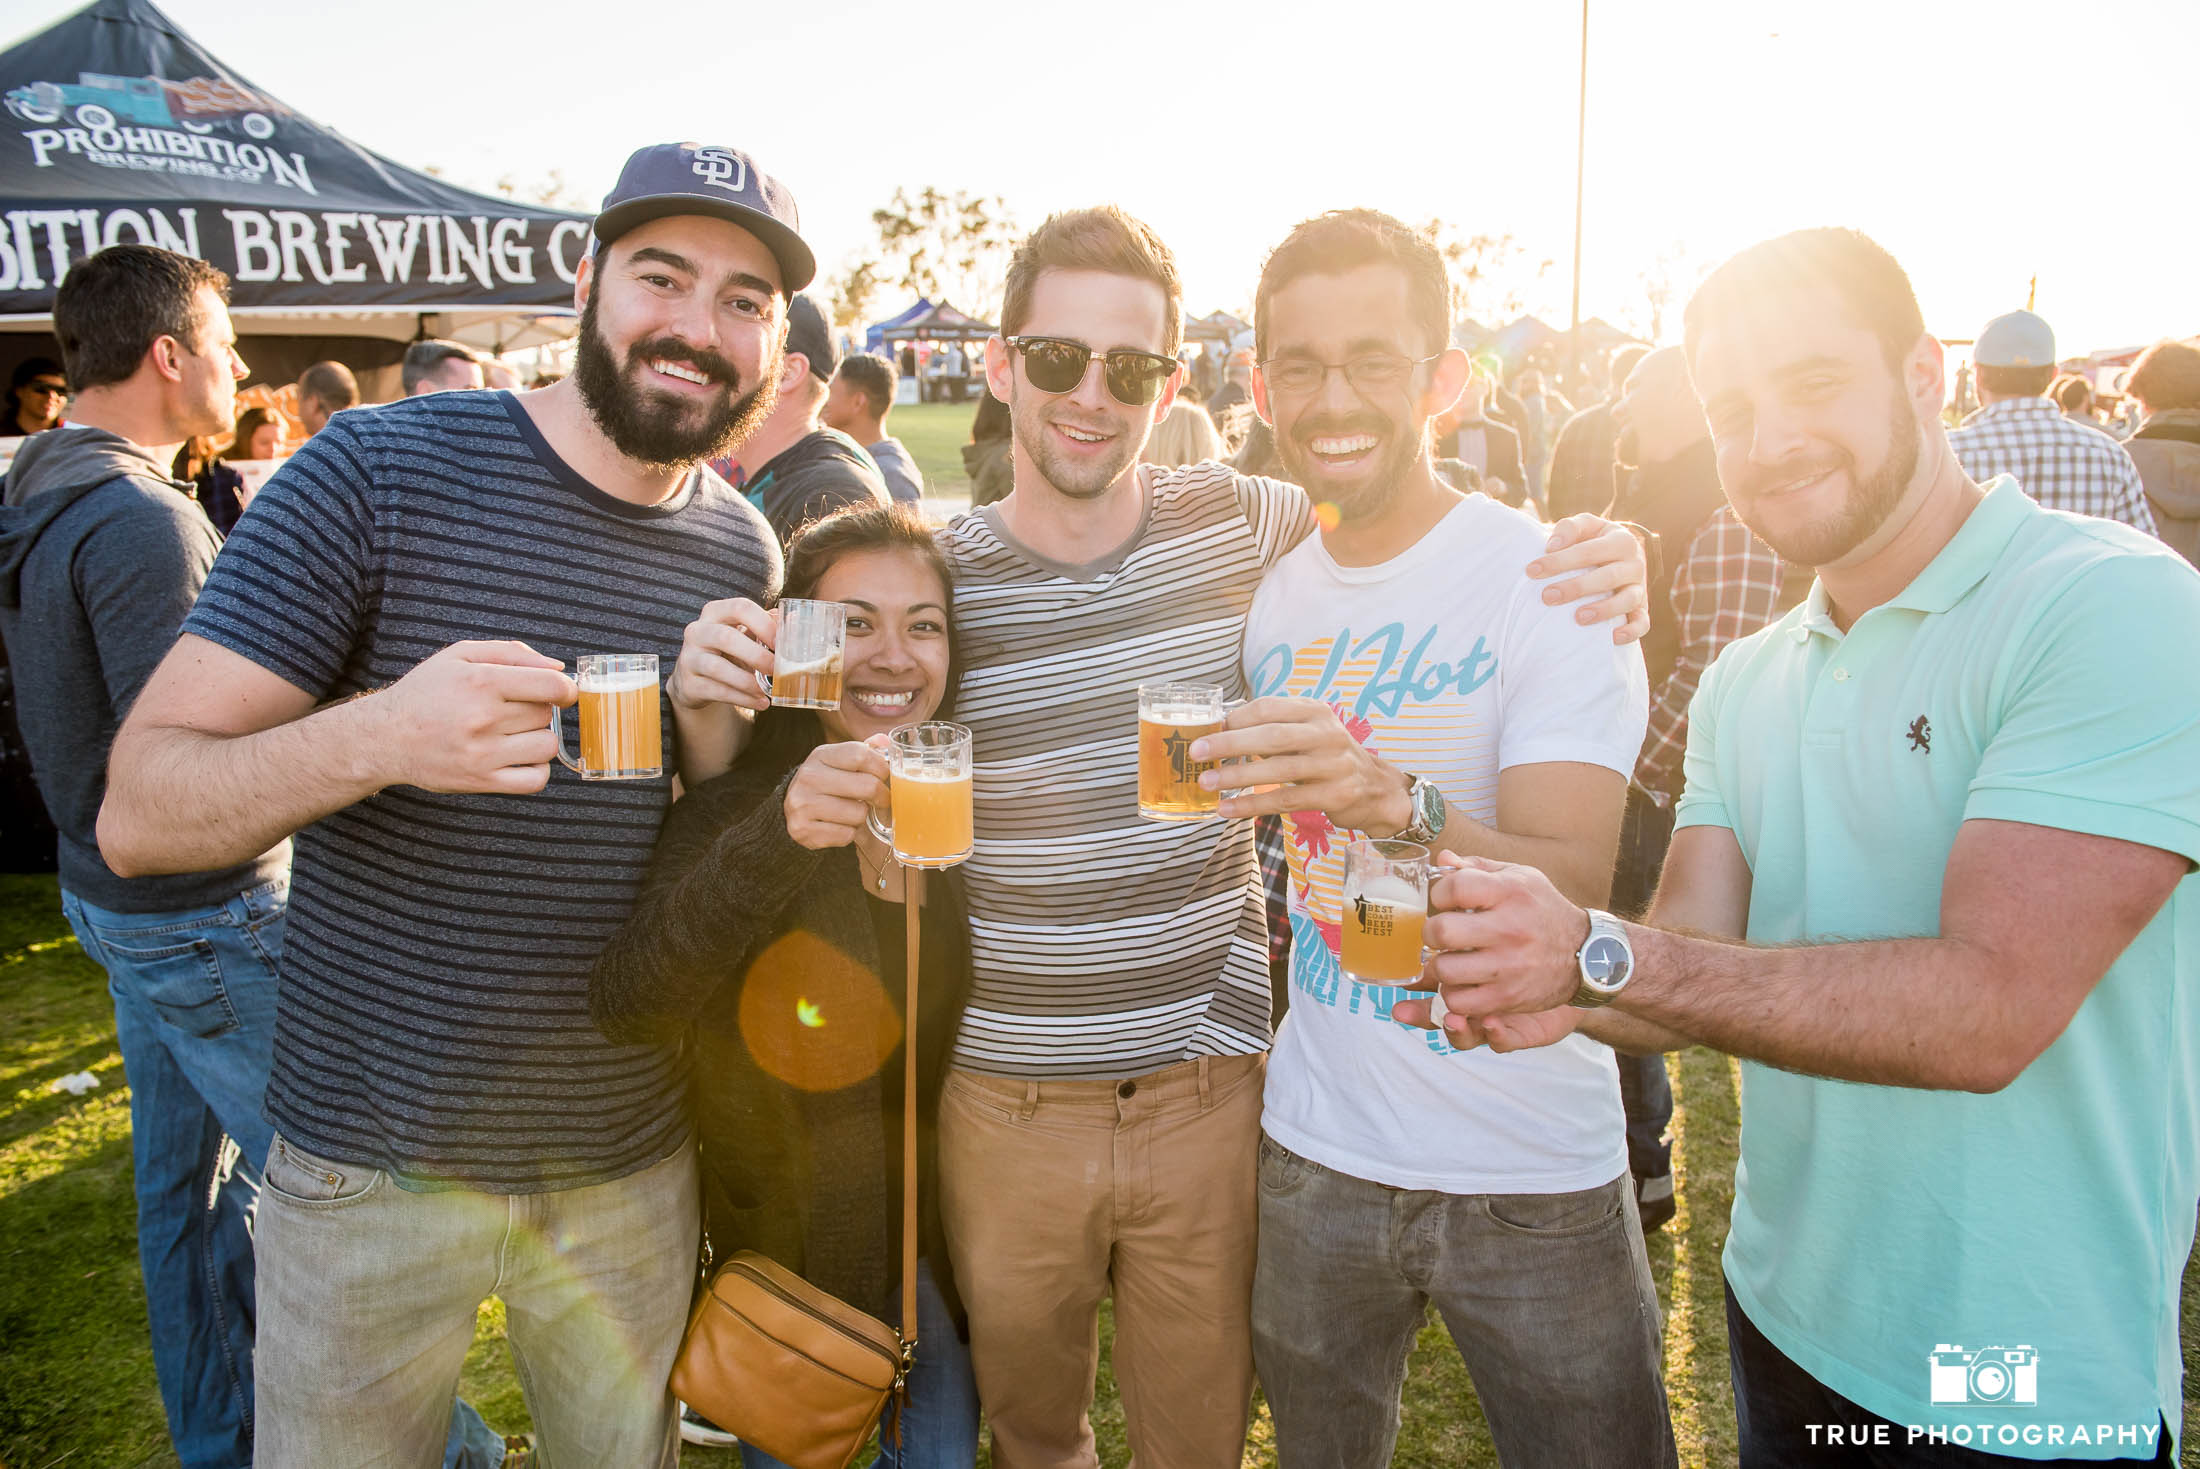 Friends hug and toast with beer tasters during cancer charity event, Best Coast Beer Fest